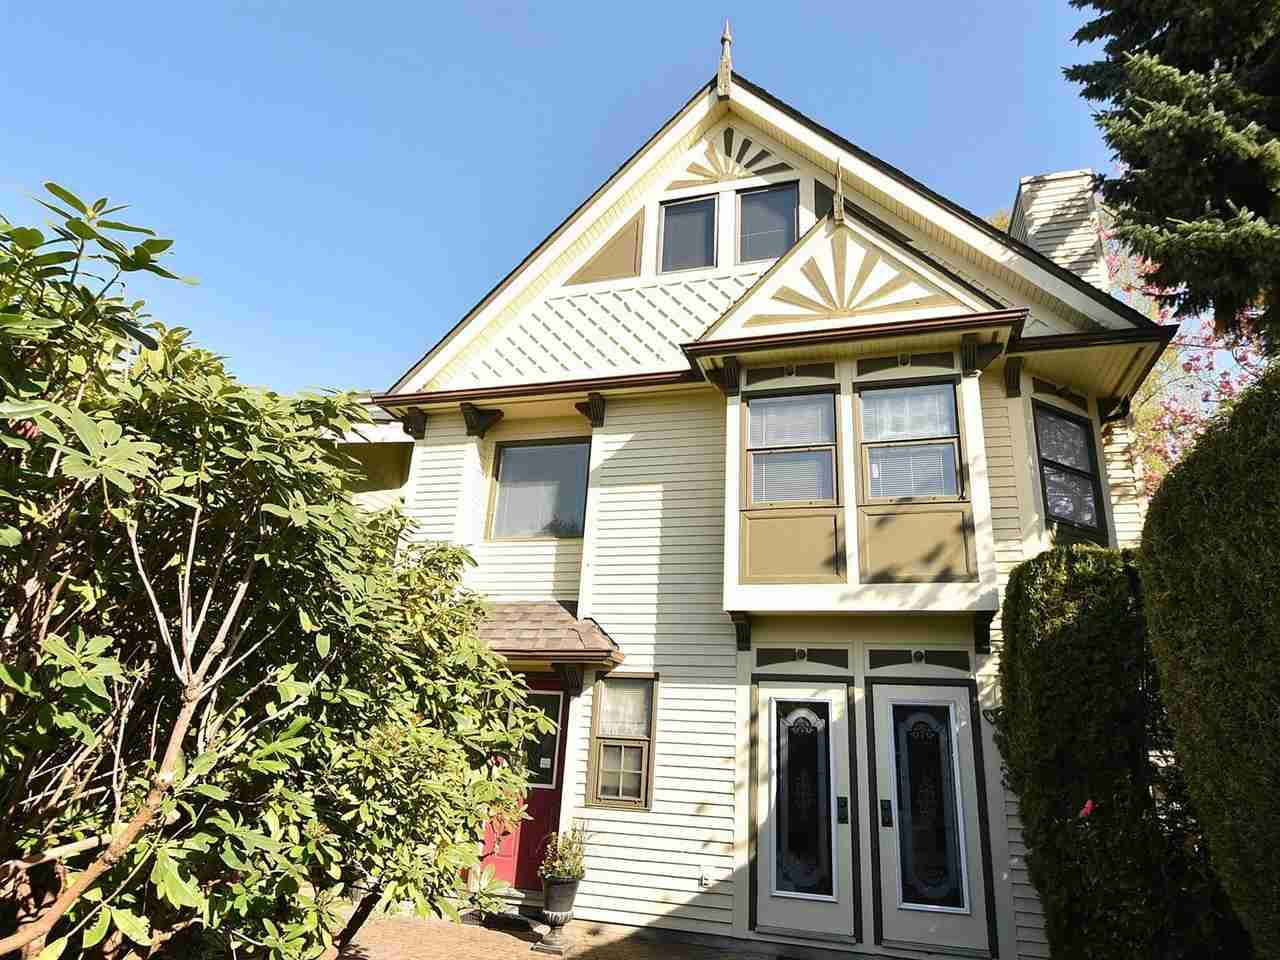 Main Photo: 3203 W 3RD Avenue in Vancouver: Kitsilano 1/2 Duplex for sale (Vancouver West)  : MLS®# R2053036